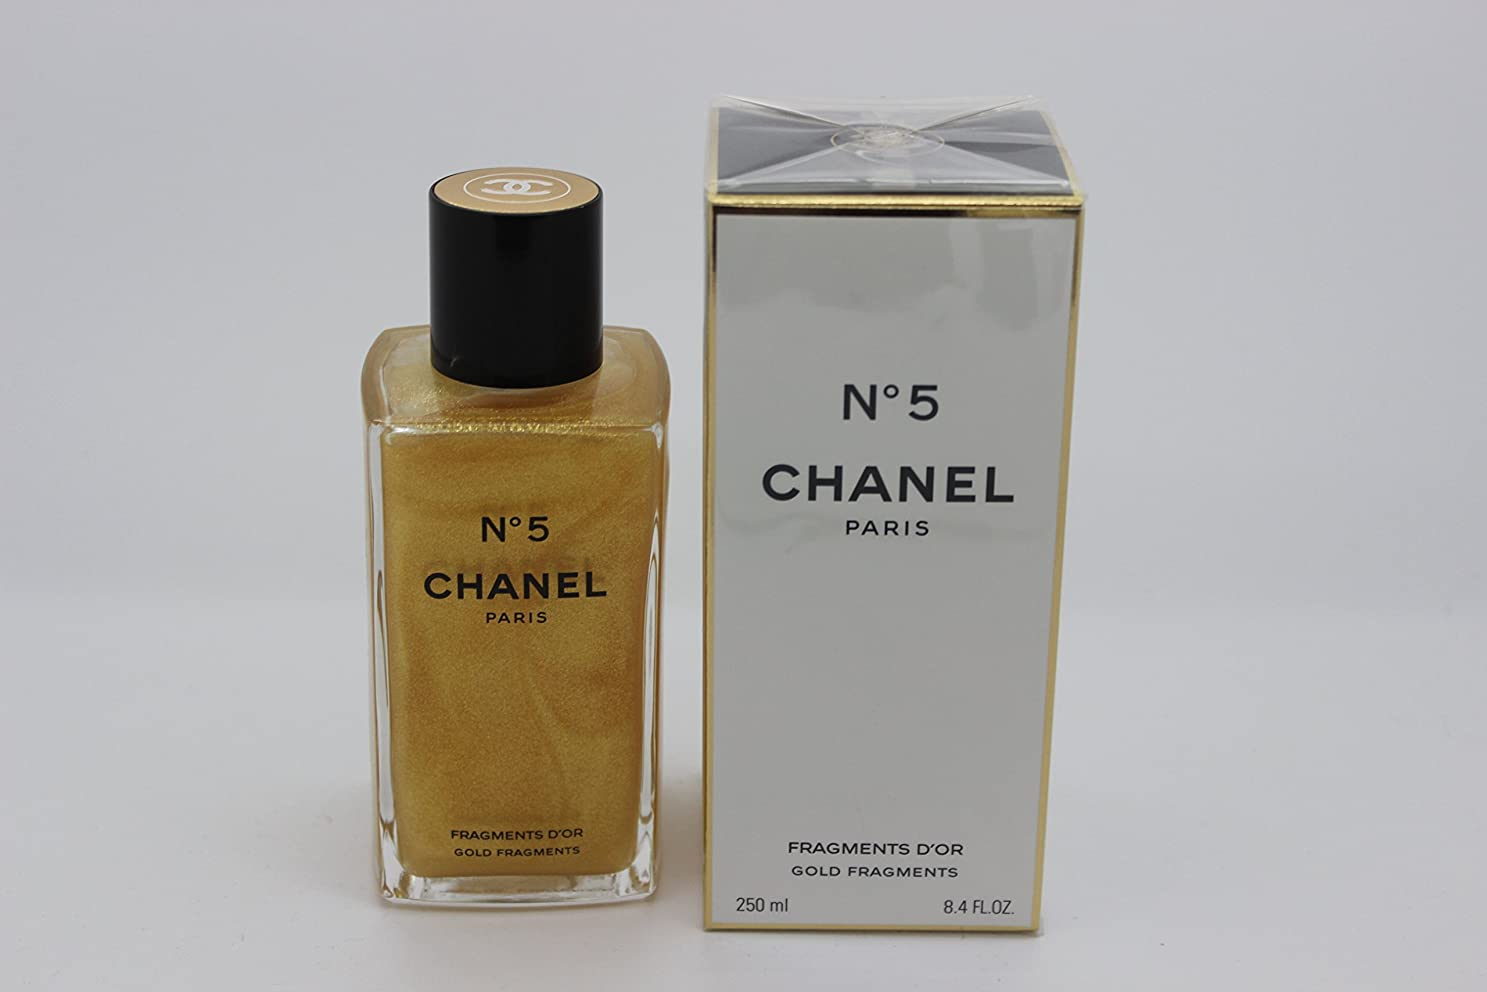 ピックターゲット階層Chanel No. 5 (シャネル No. 5) 8.4 oz (252ml) Gold Fragments Shimmering Body Gel for Women